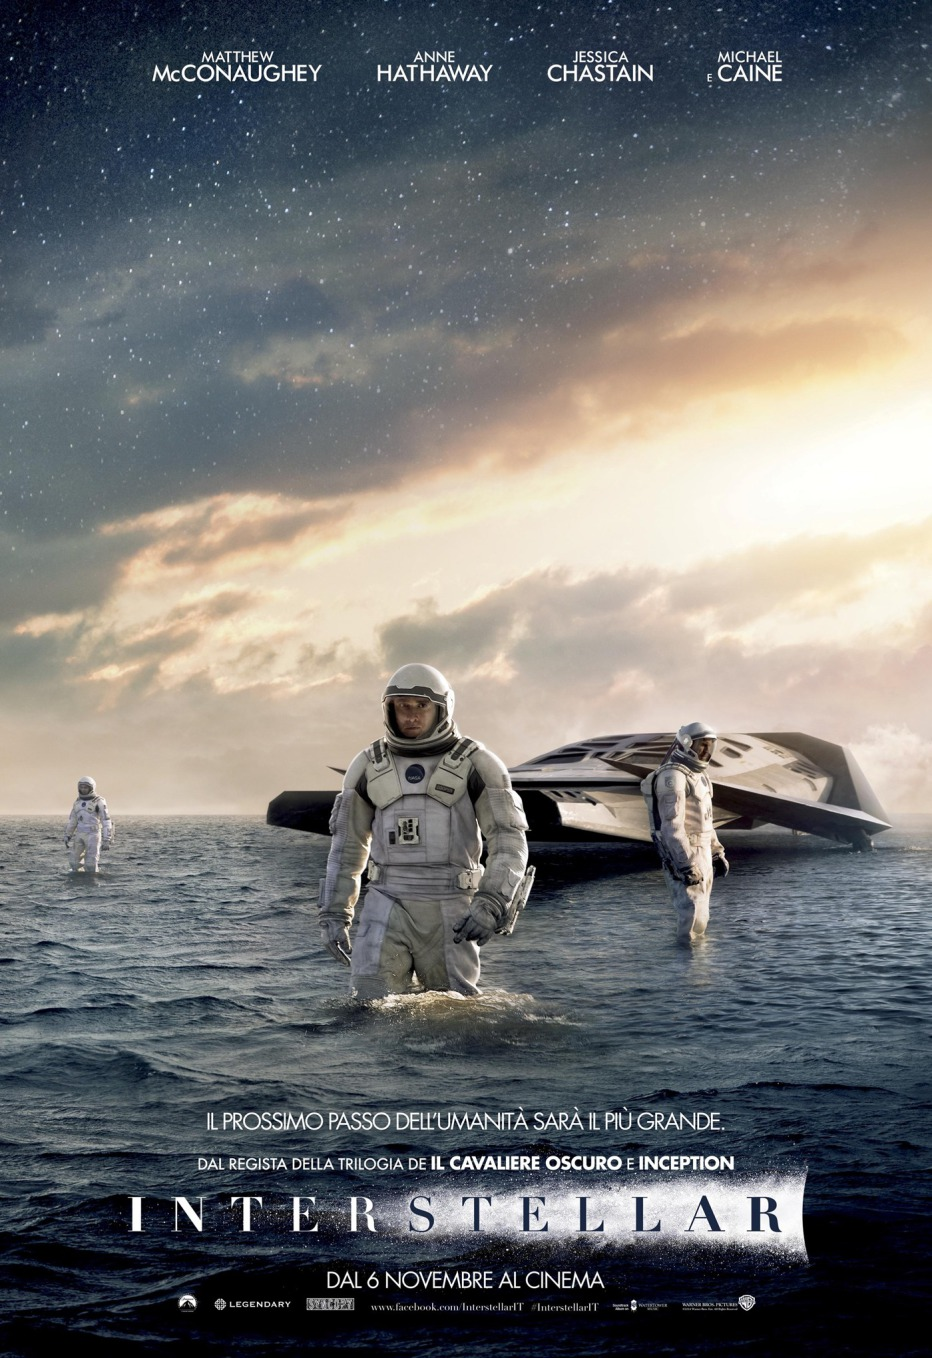 interstellar-2014-nolan-34.jpg